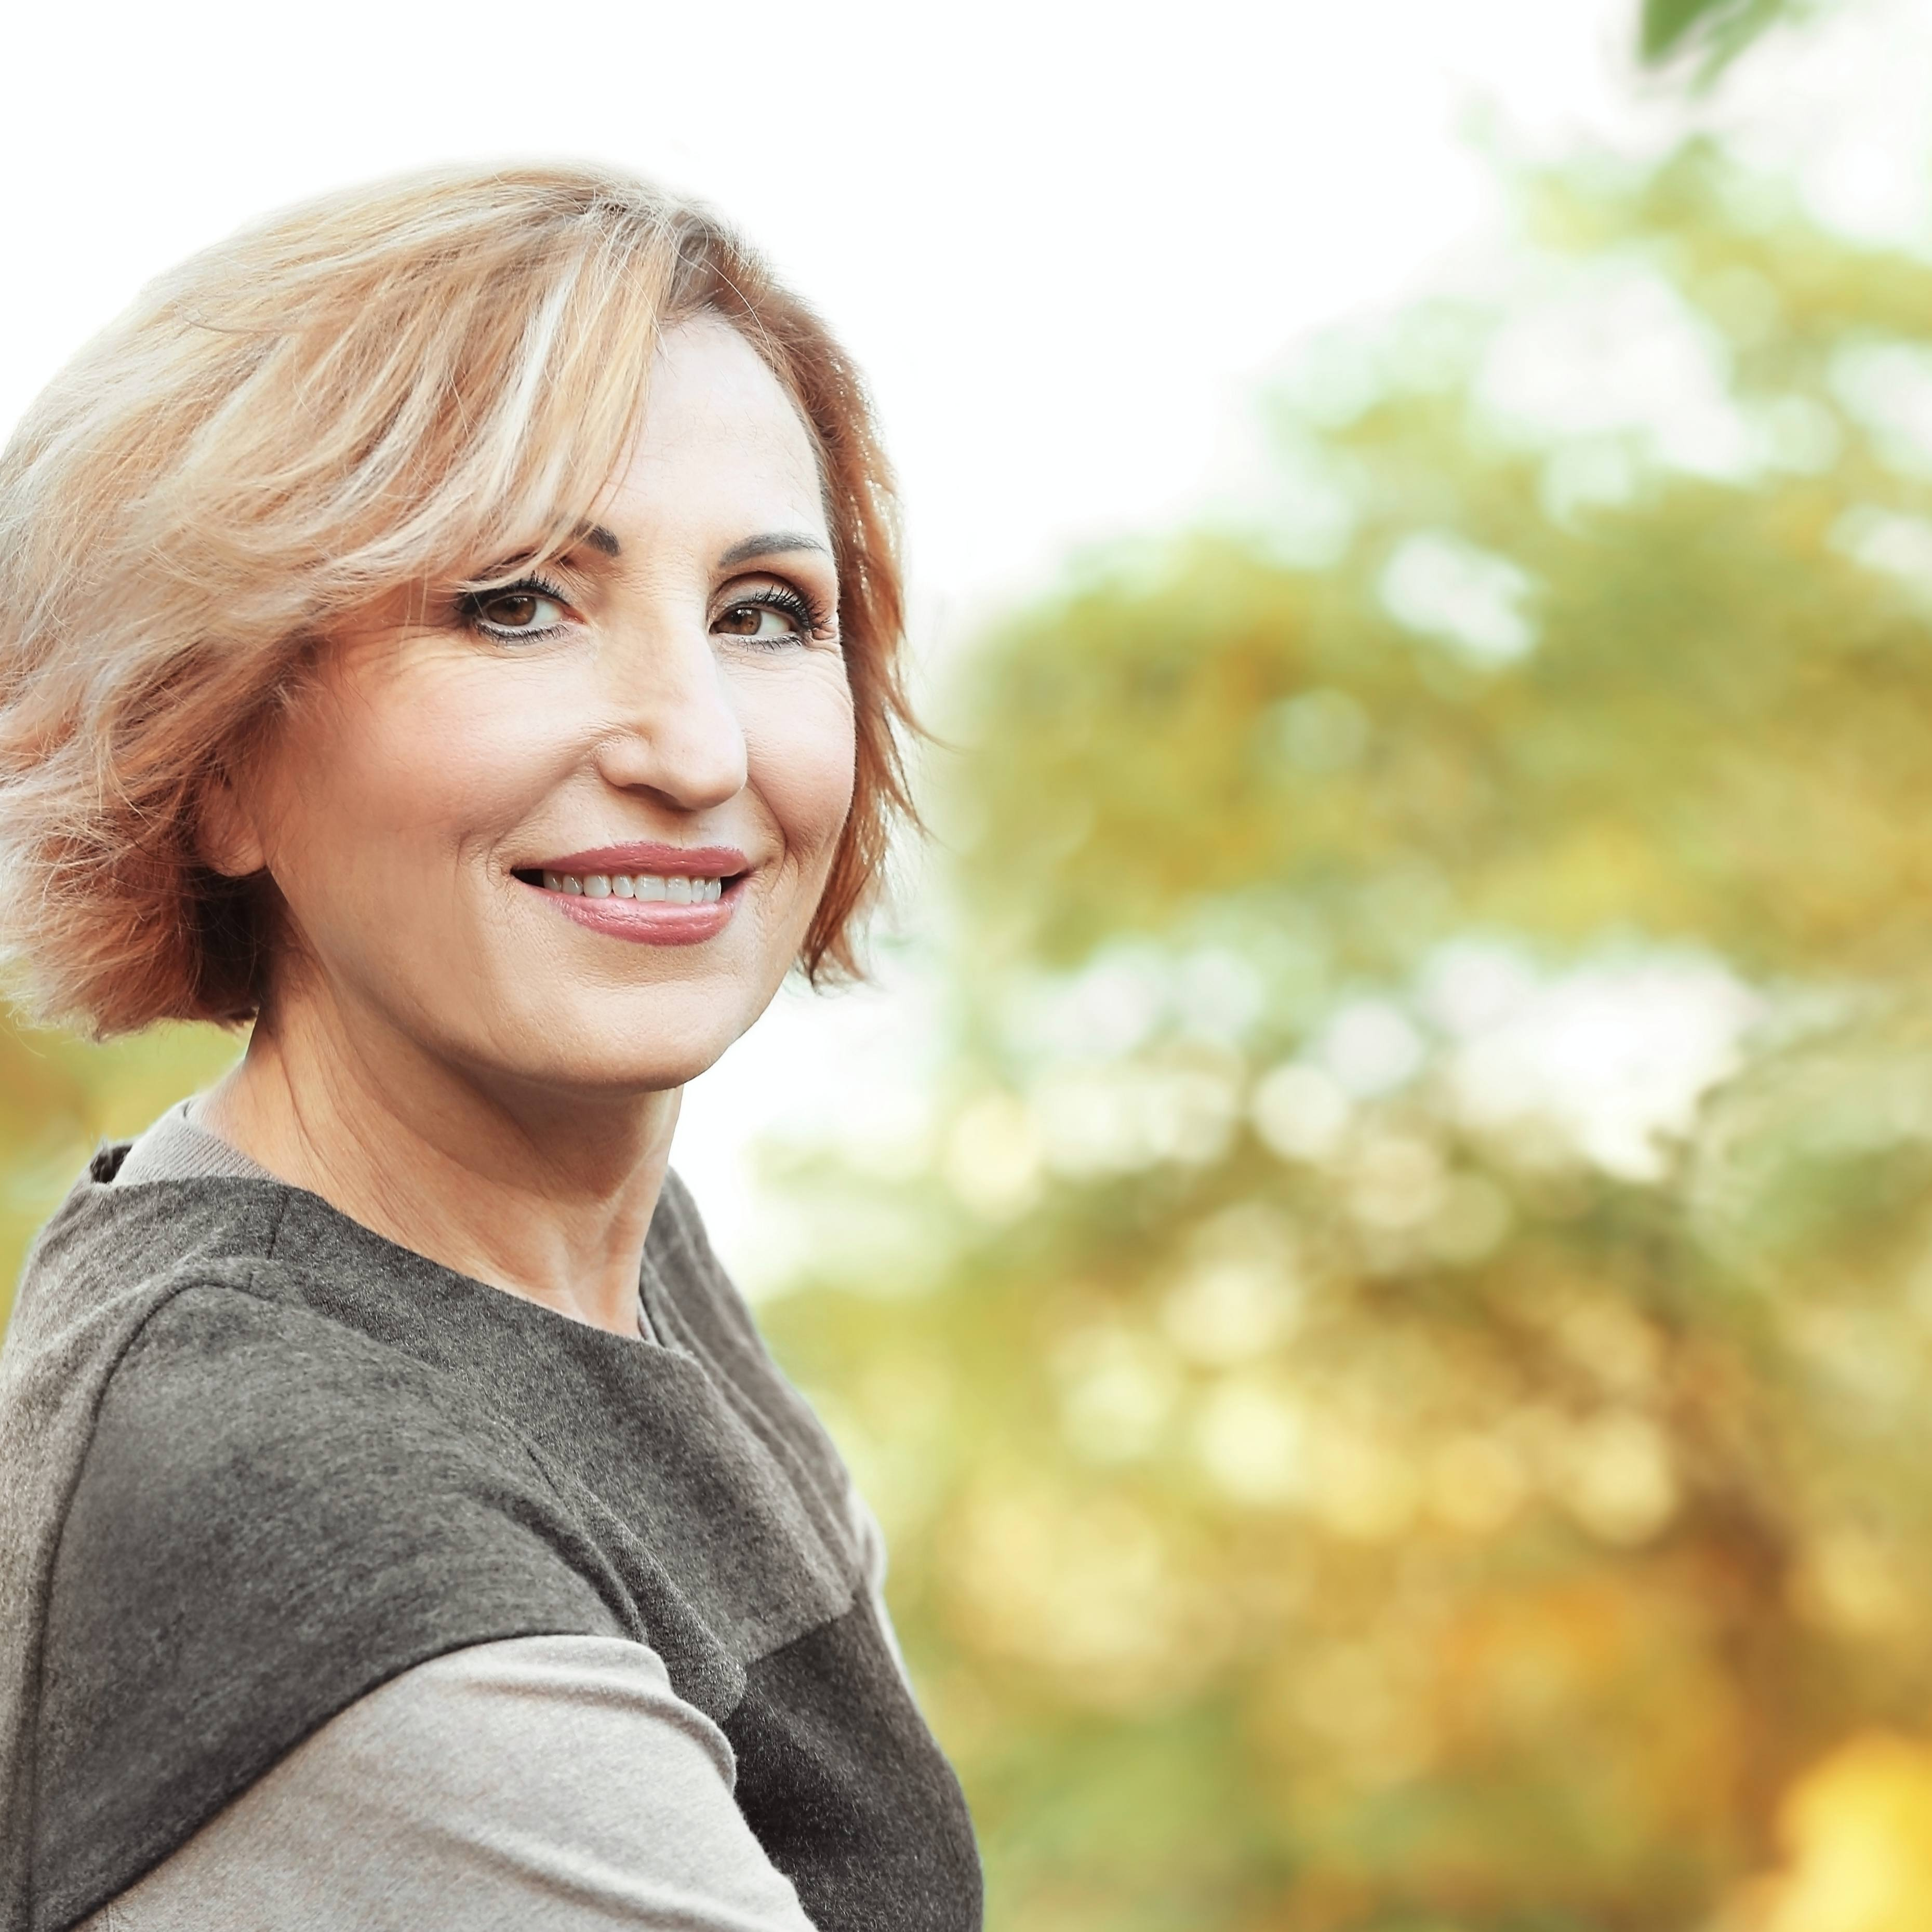 Beautiful middle-aged woman in autumn park